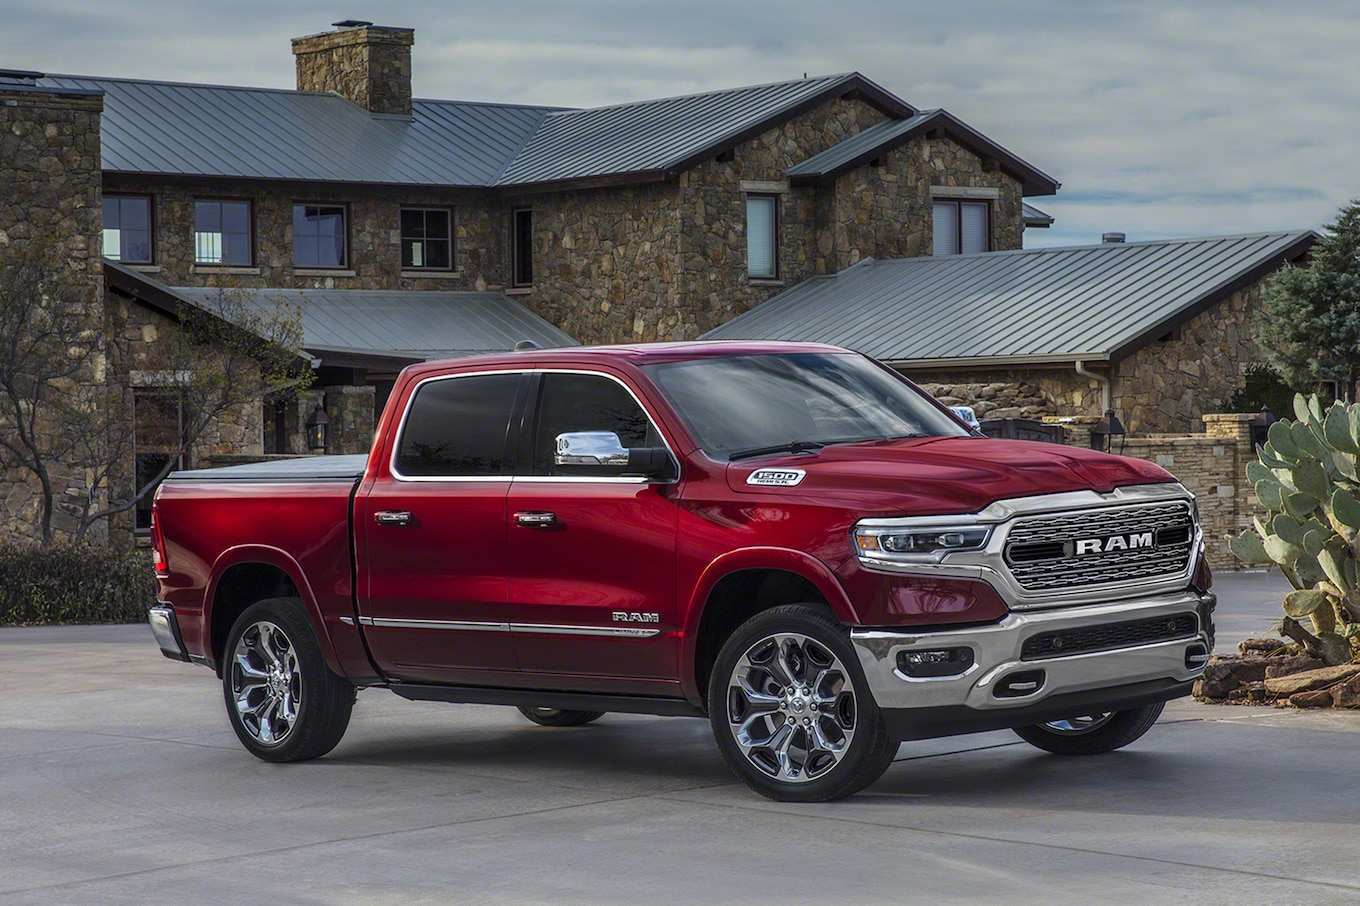 87 Gallery of 2019 Dodge Ram Pick Up Research New with 2019 Dodge Ram Pick Up